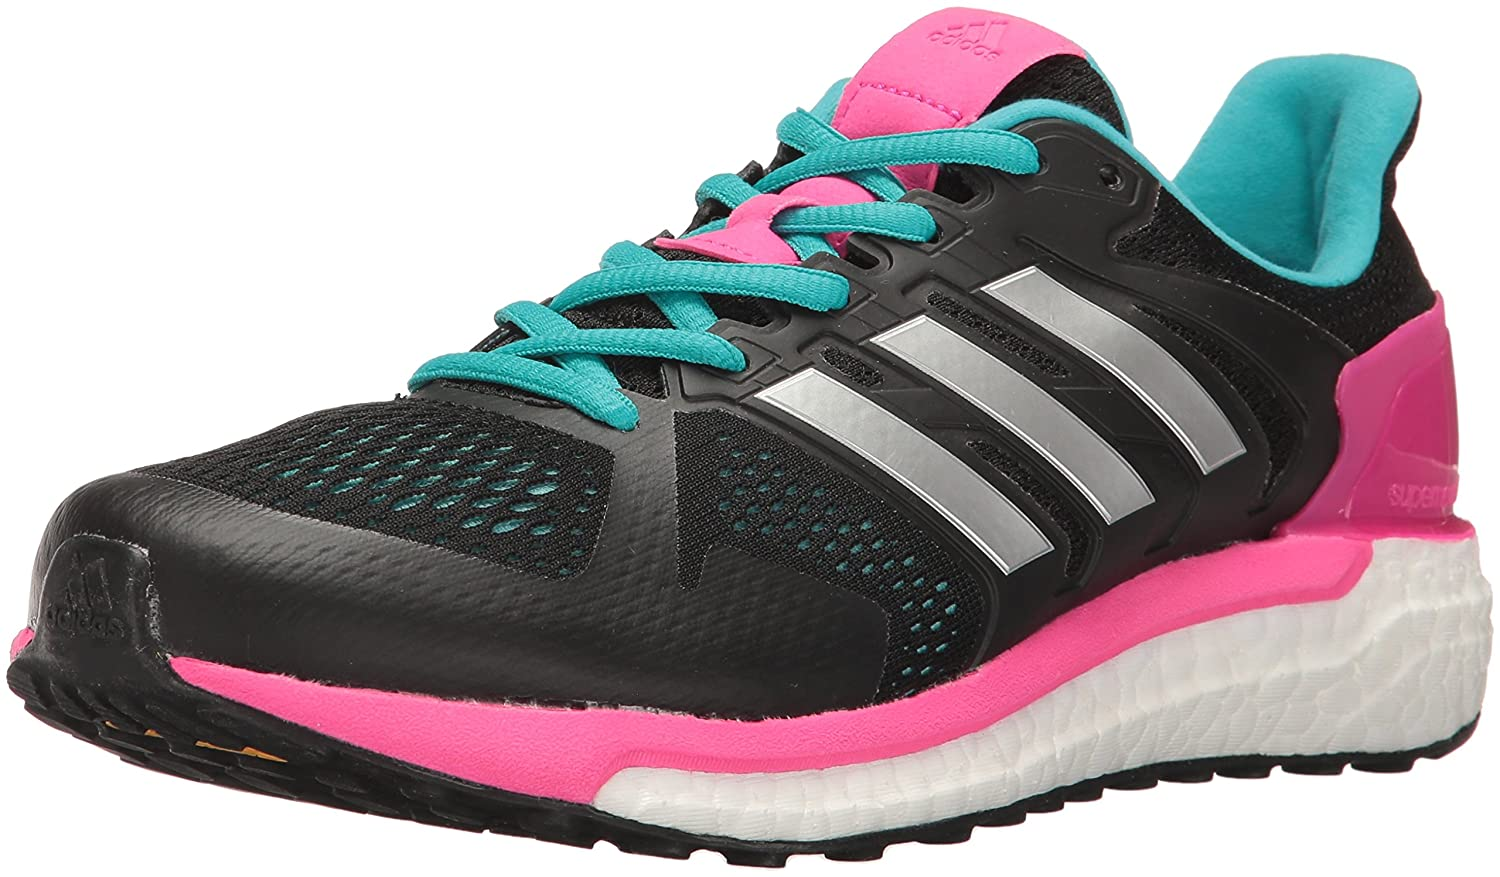 adidas Women's Supernova St W Running Shoe B01LP4NNBW 9.5 B(M) US|Black/Metallic/Silver/Shock Pink S